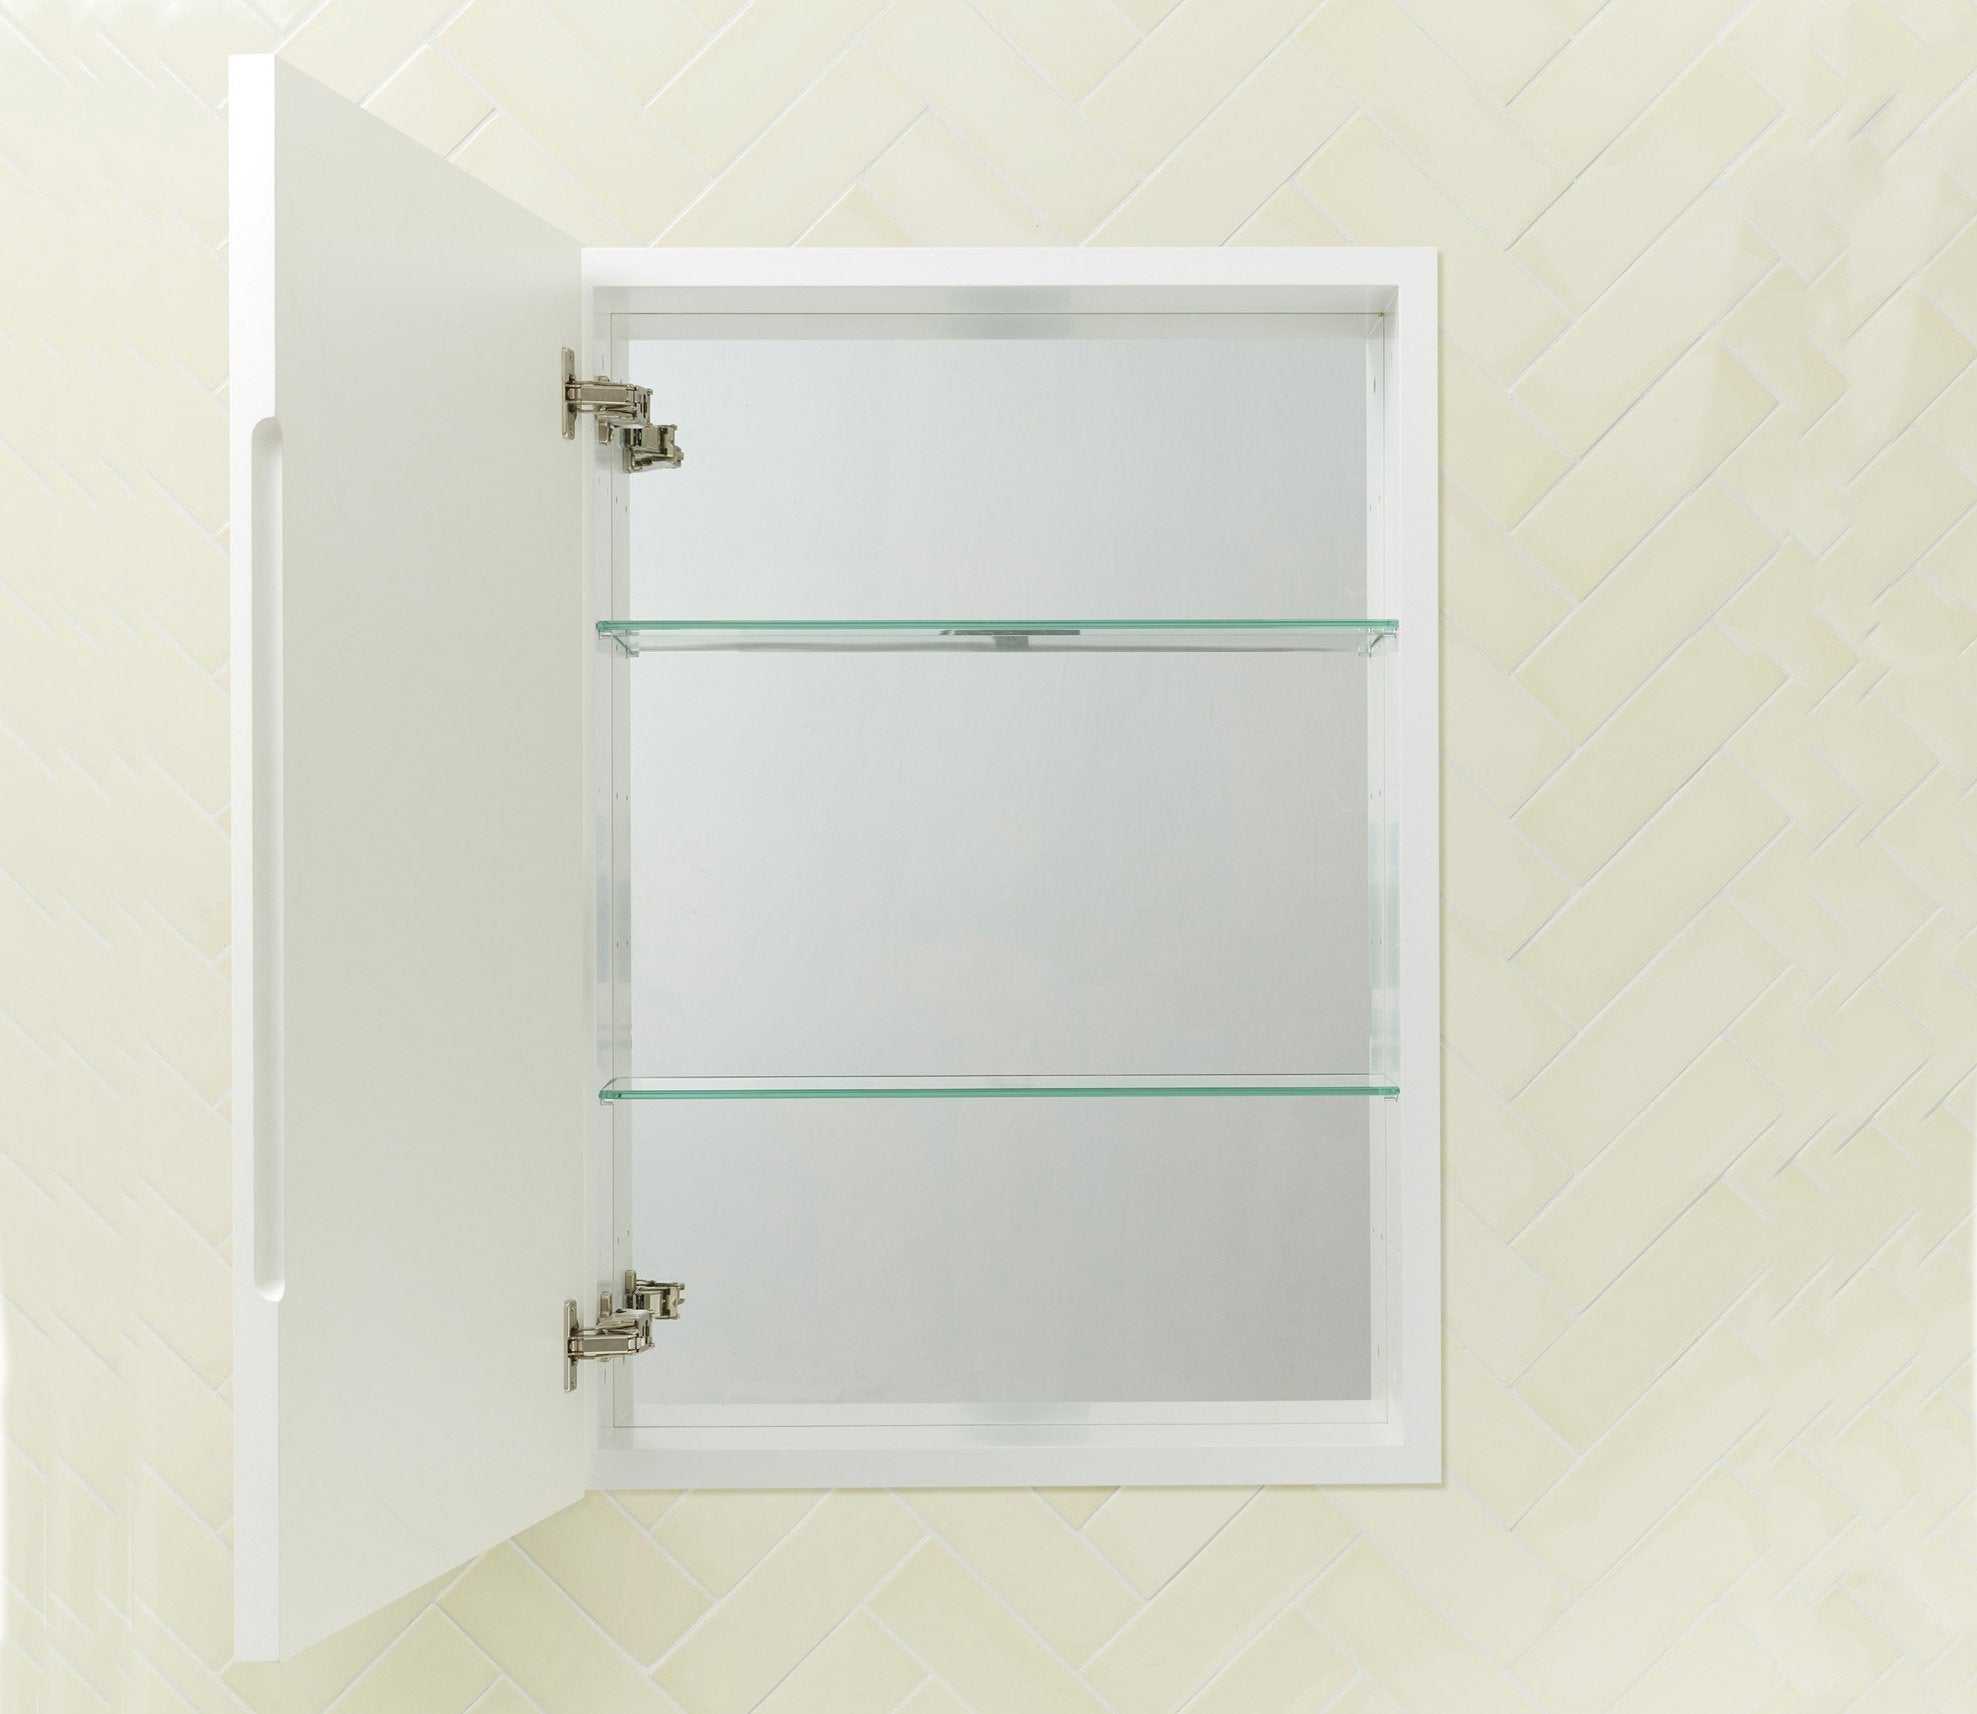 Simplified Pharmacy Cabinet Product Image 3